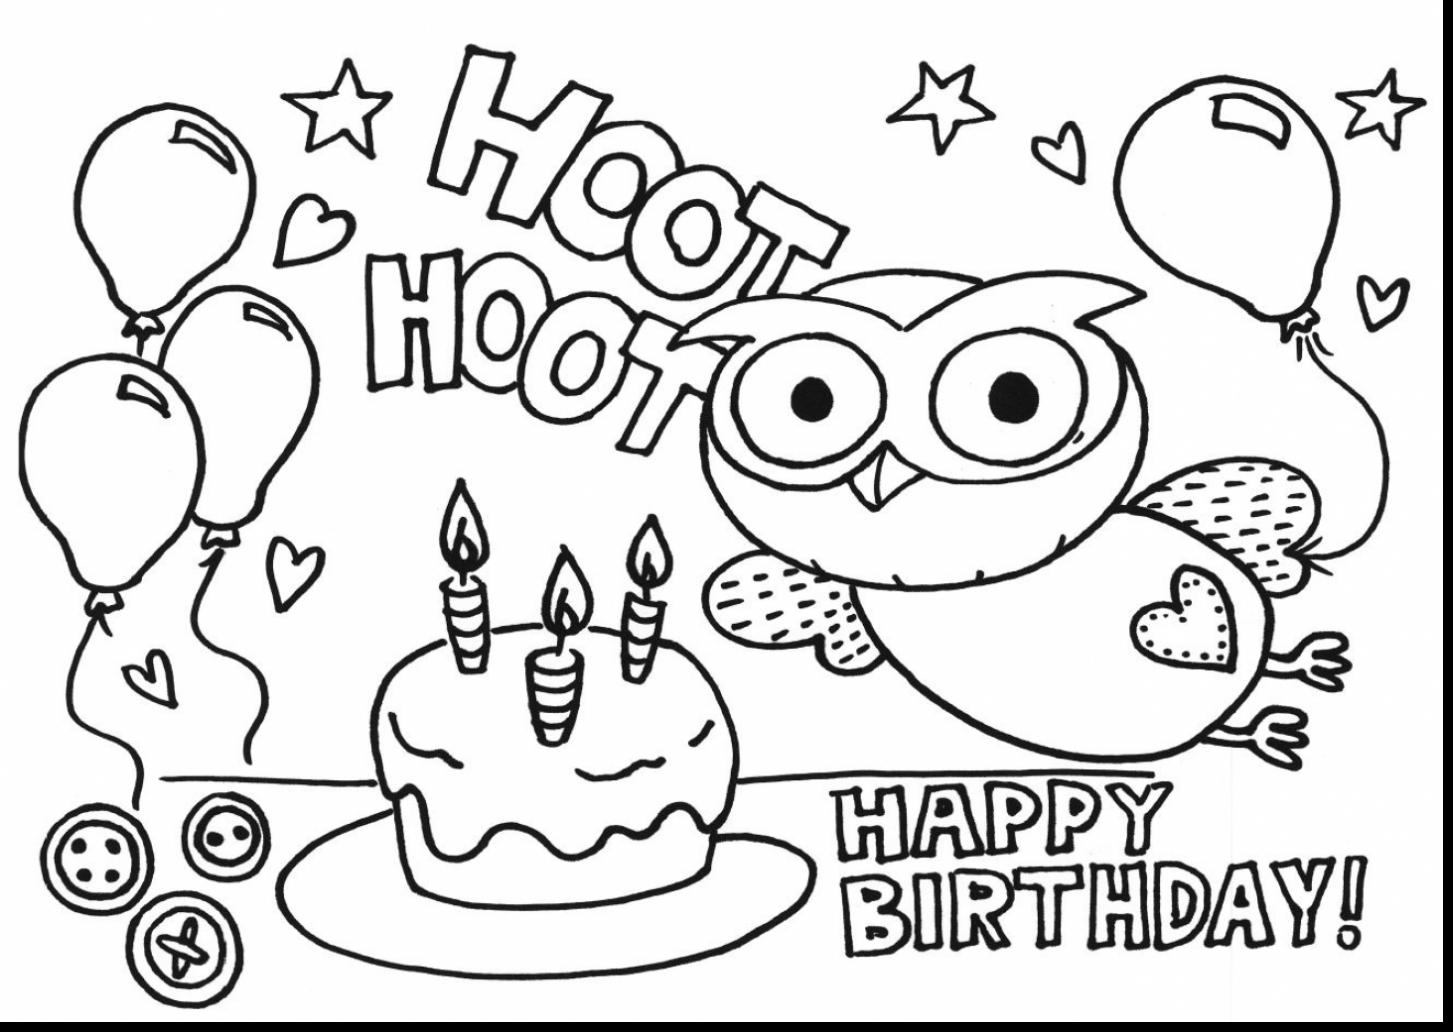 printable happy birthday coloring sheets ; coloring-book-awesome-happy-birthday-pages-with-cake-and-7